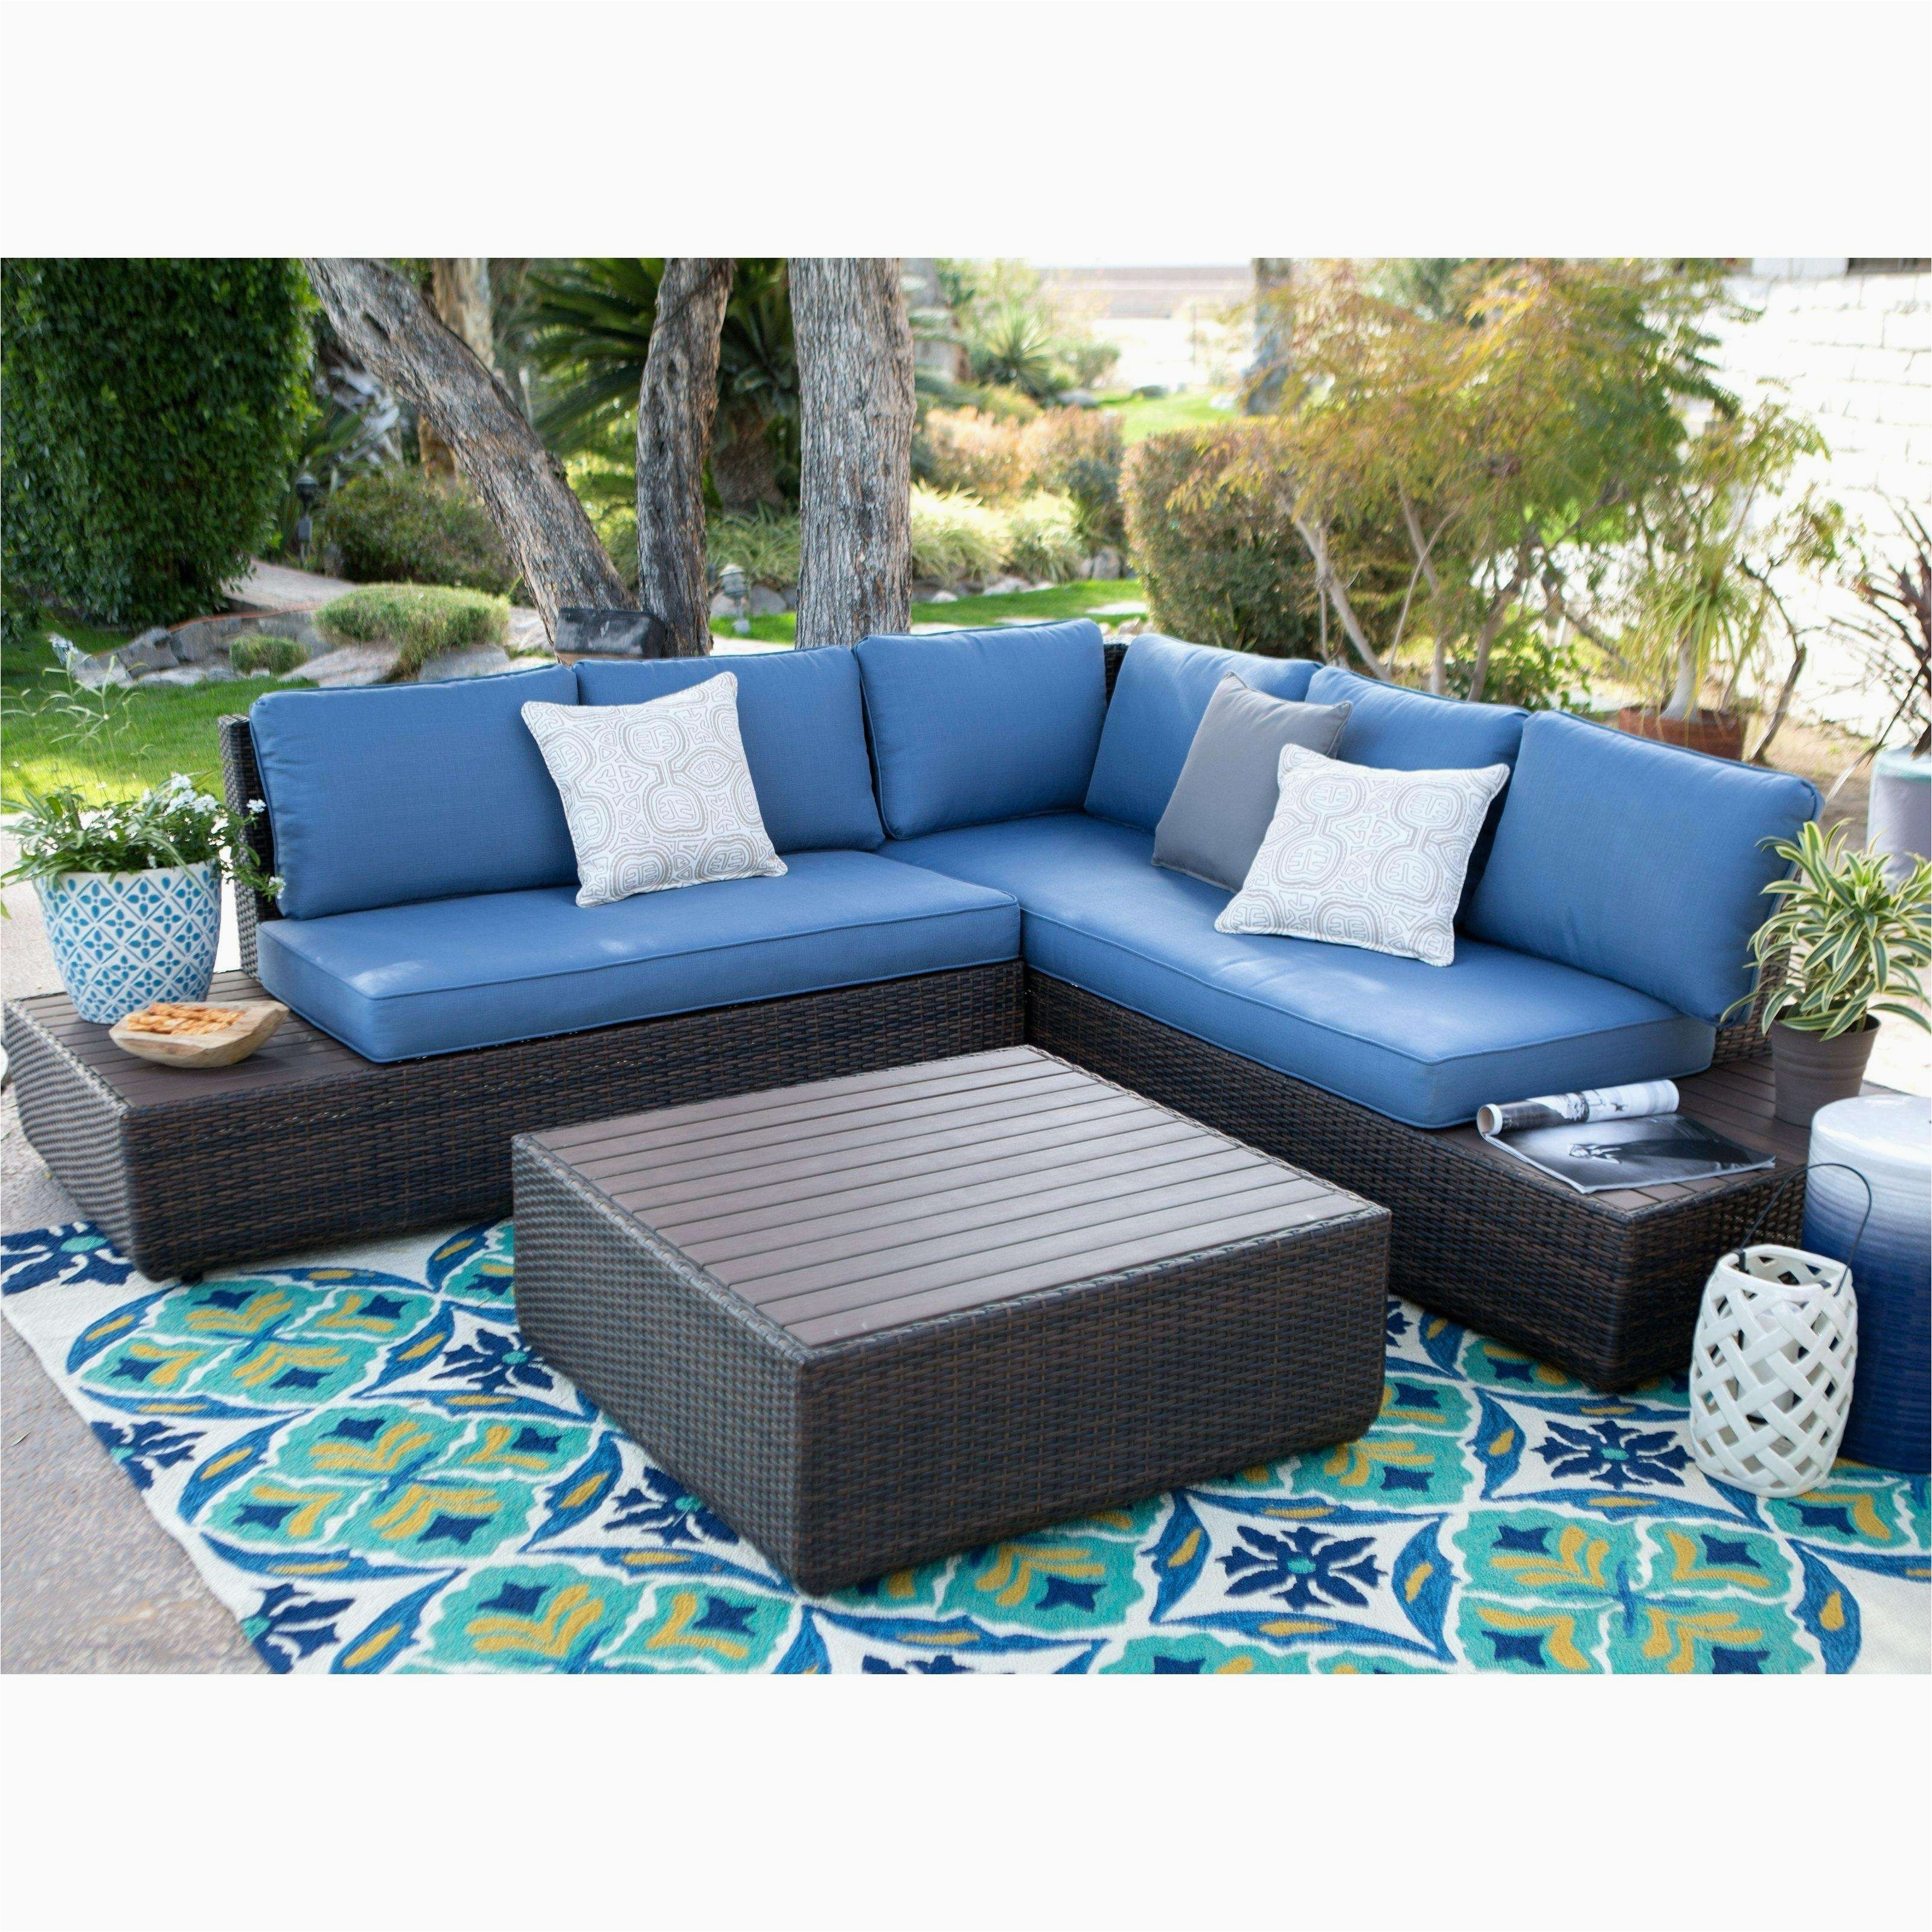 Cook Brothers Furniture Cottage Style Living Room Furniture Best Of Wicker Outdoor sofa 0d